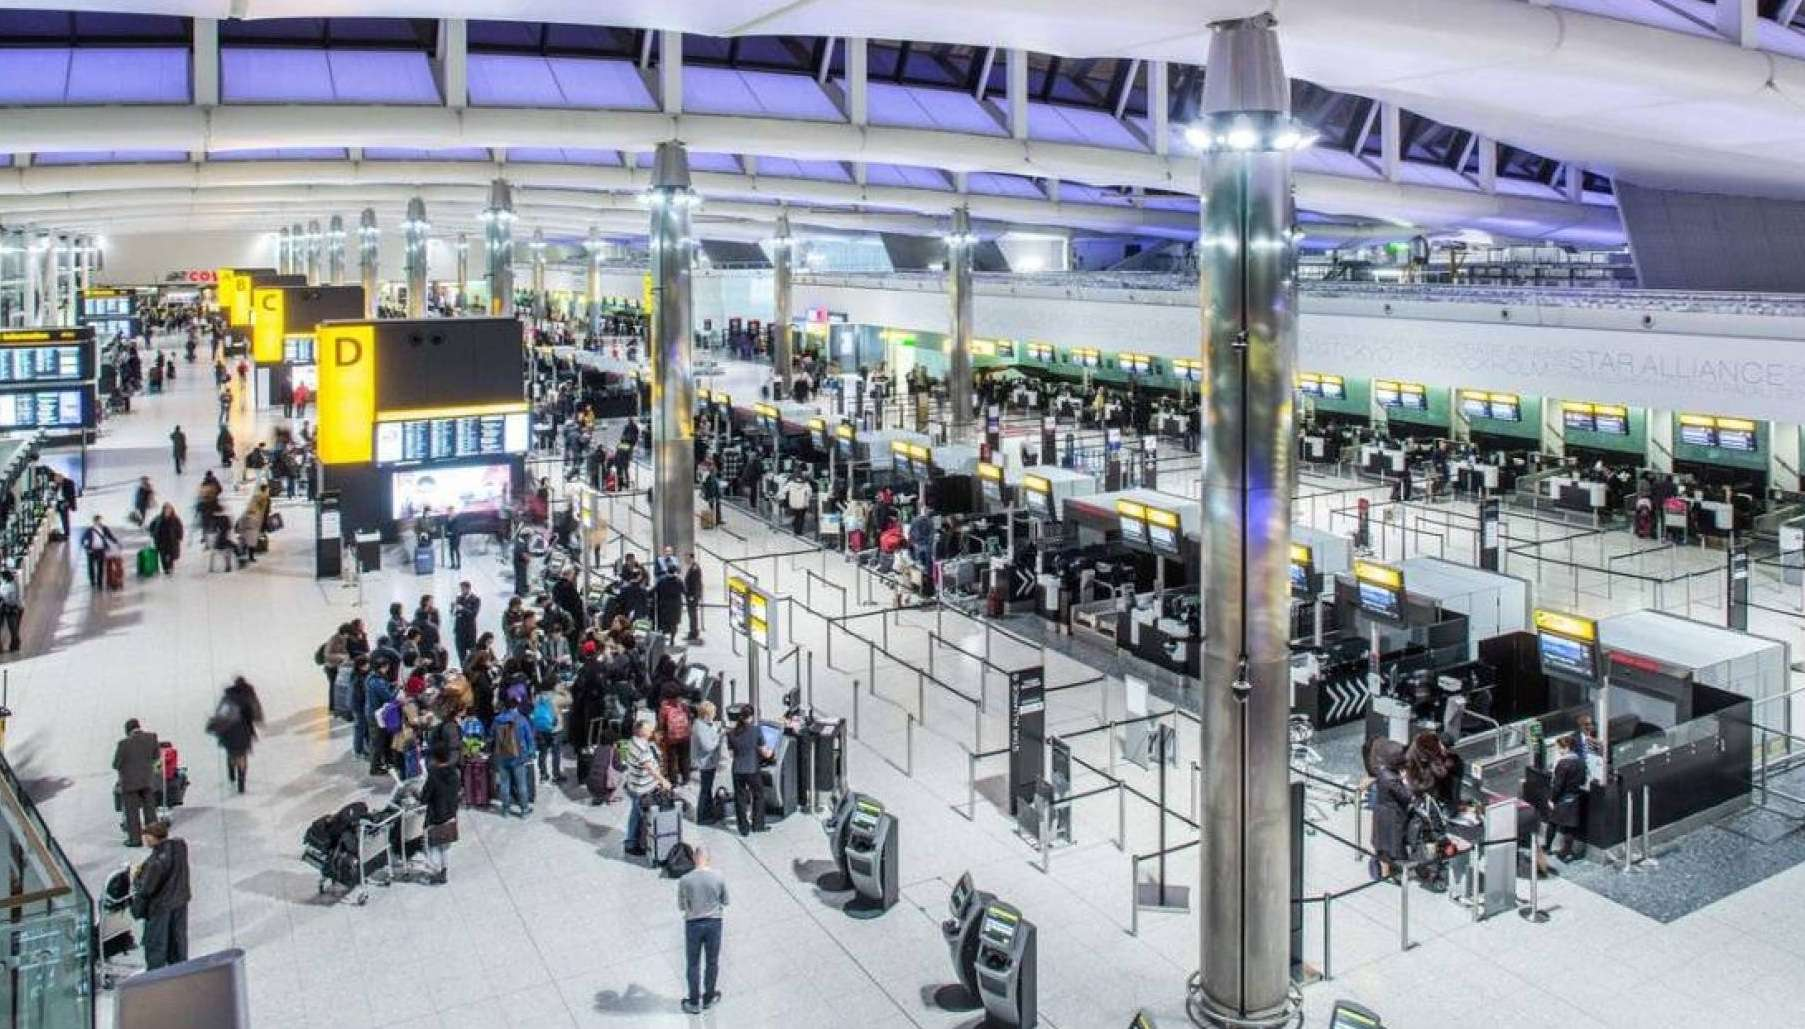 Chaos in a London airport, Arabic newspaper in Boston-USA-Profile News